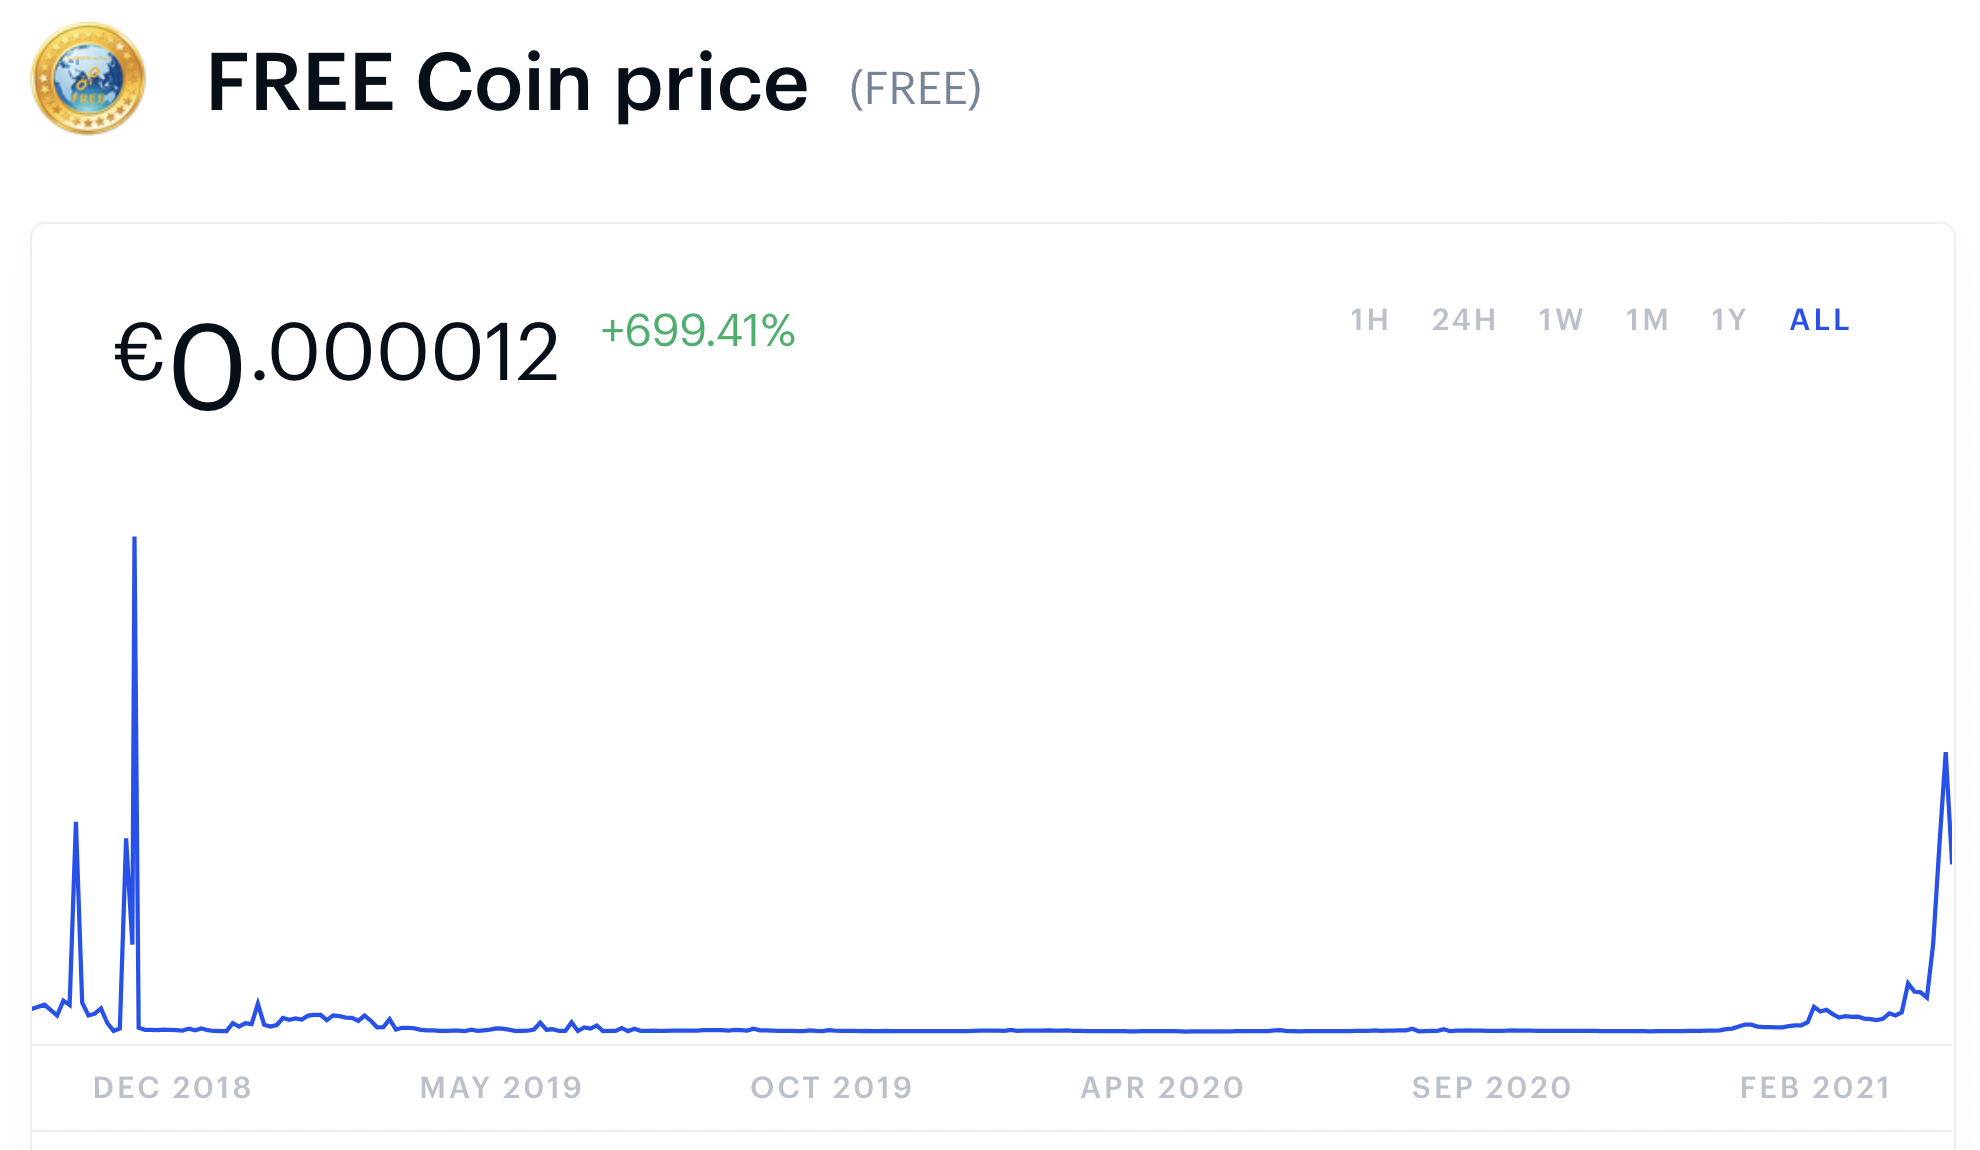 FREE Coin price chart